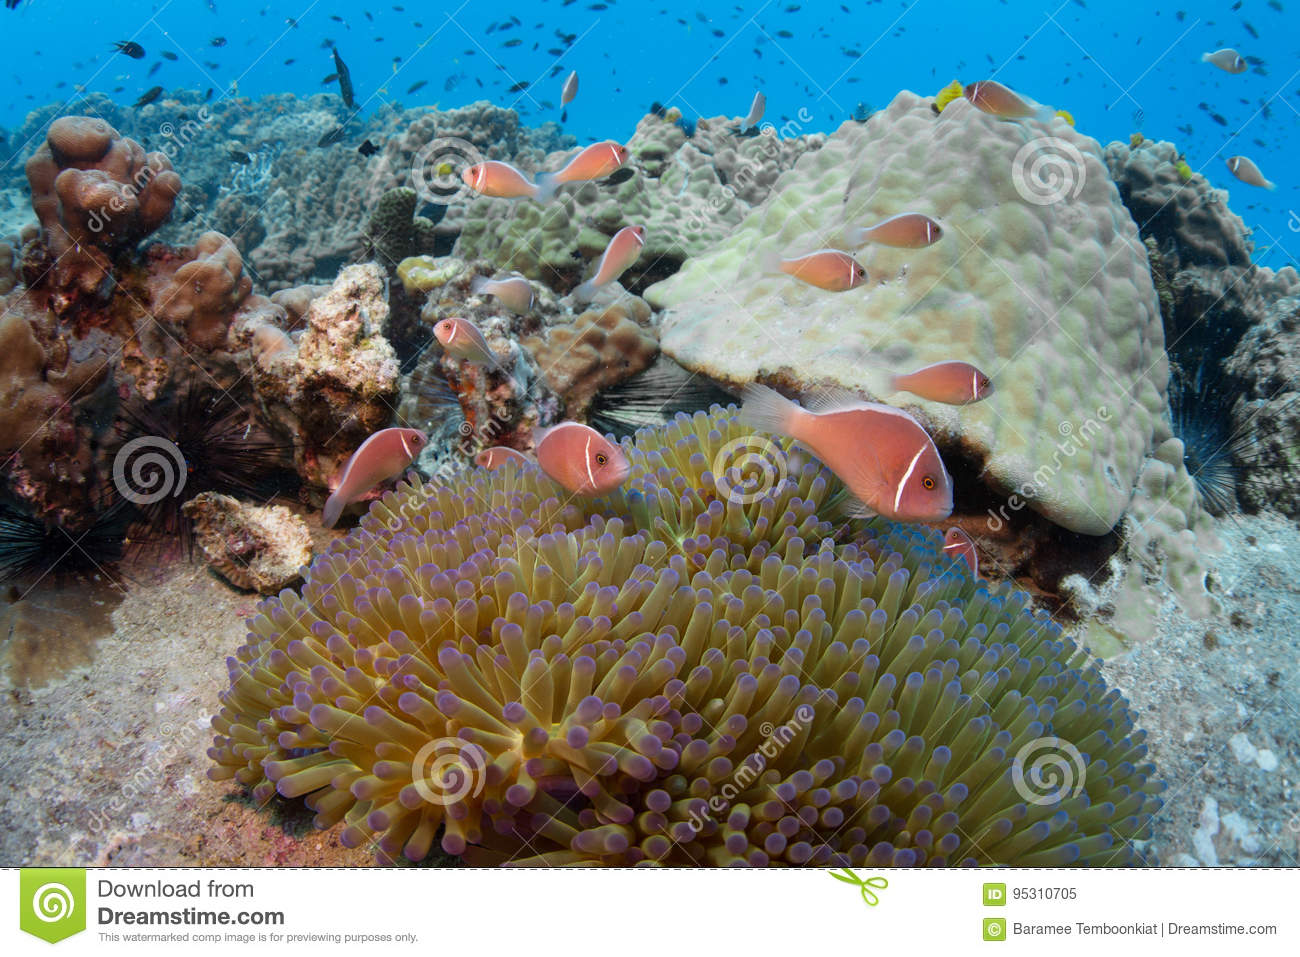 School of pink anemonefish Amphiprion perideraion in an anemon